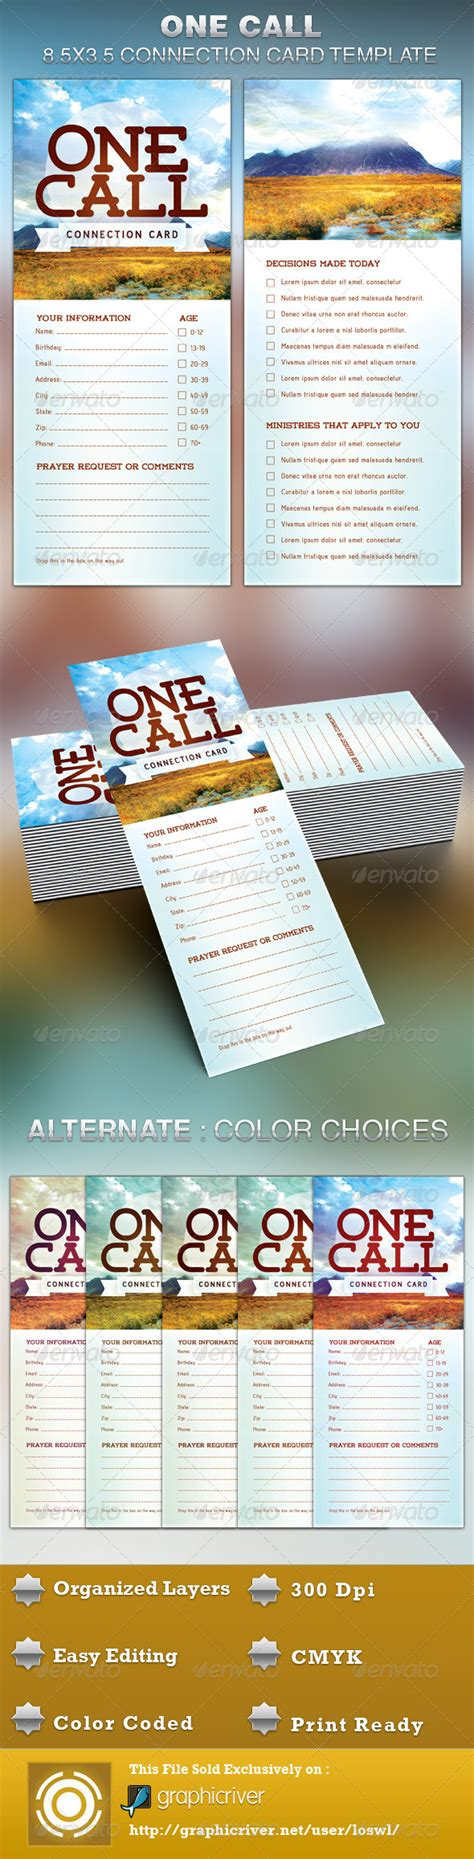 church decision card template one call church connection card template by loswl